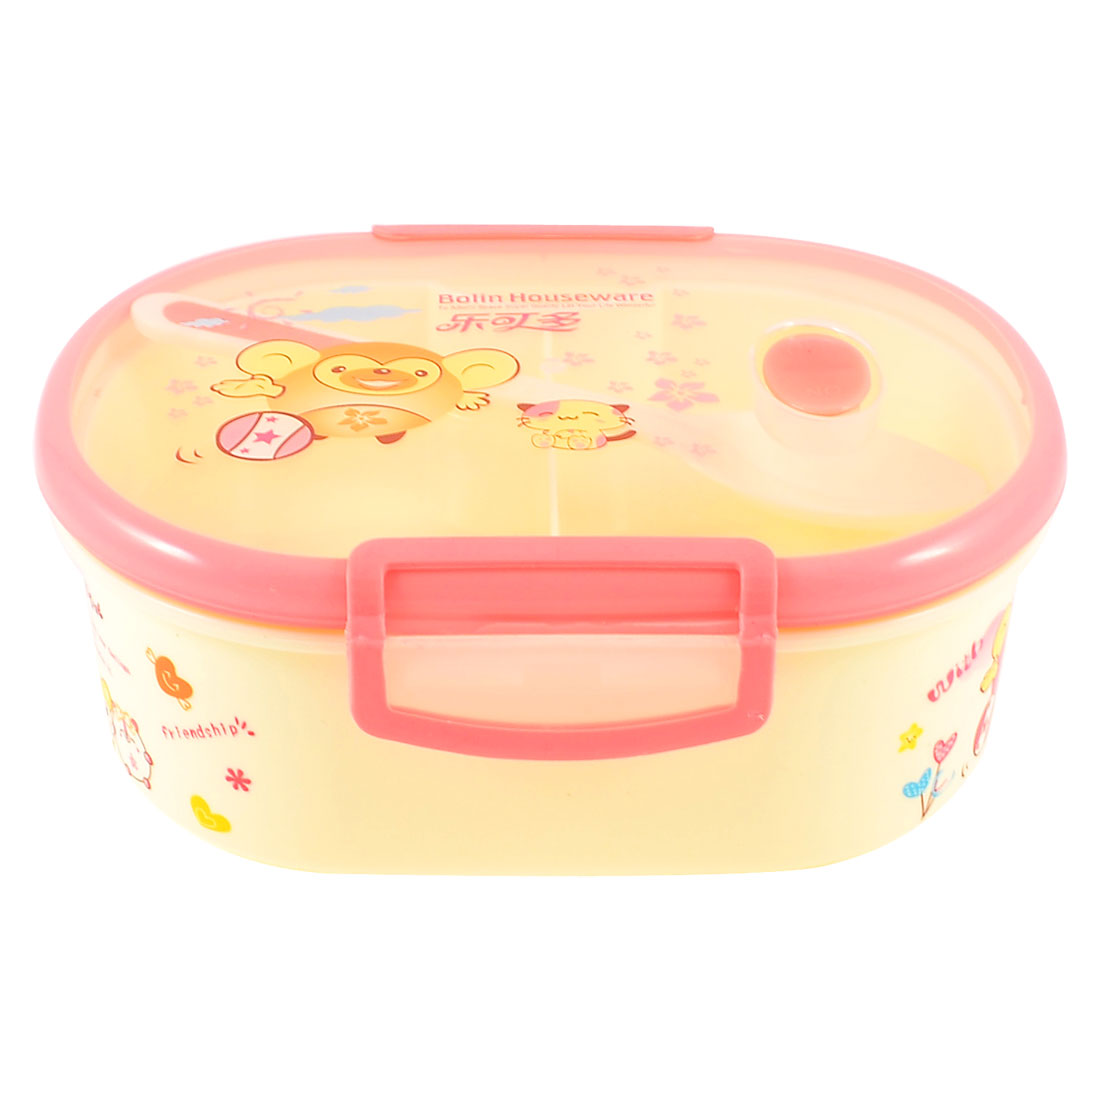 Kitchen Cartoon Printed Hole Deisgn Lunch Box Dinner Case Light Pink w Spoon